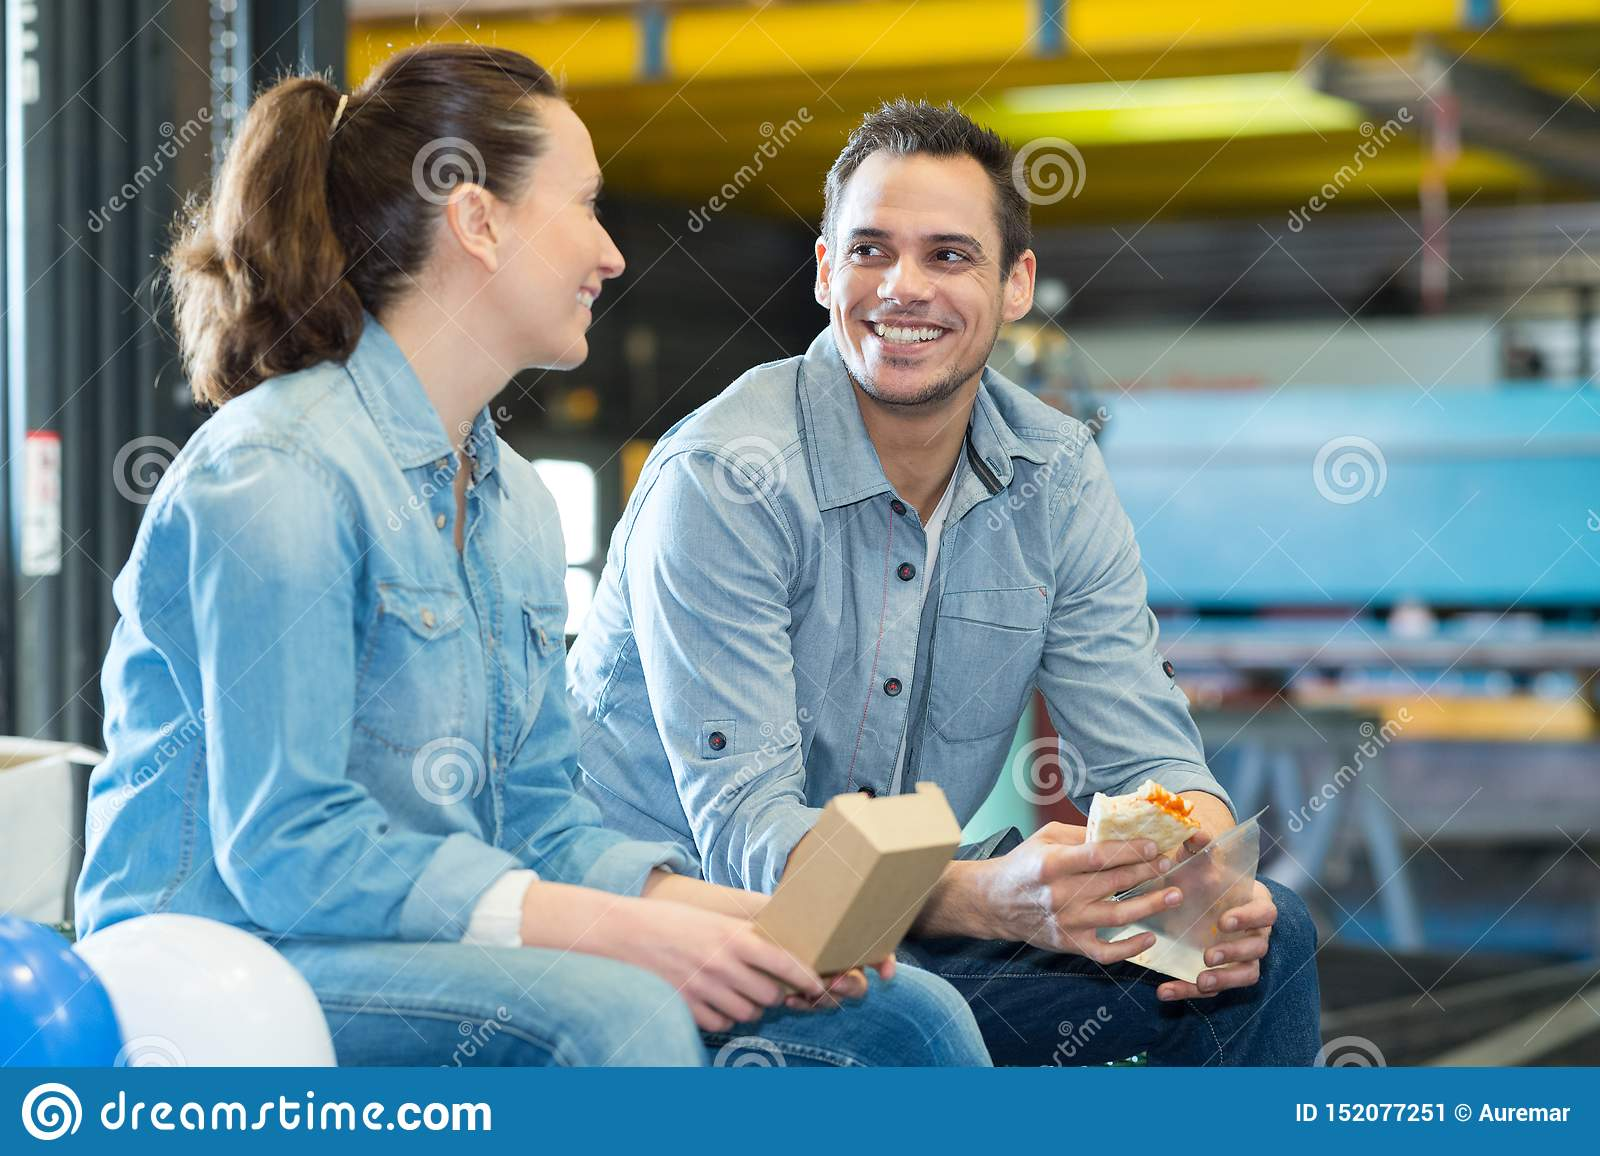 Warehouse workers sitting on pallets for lunch break